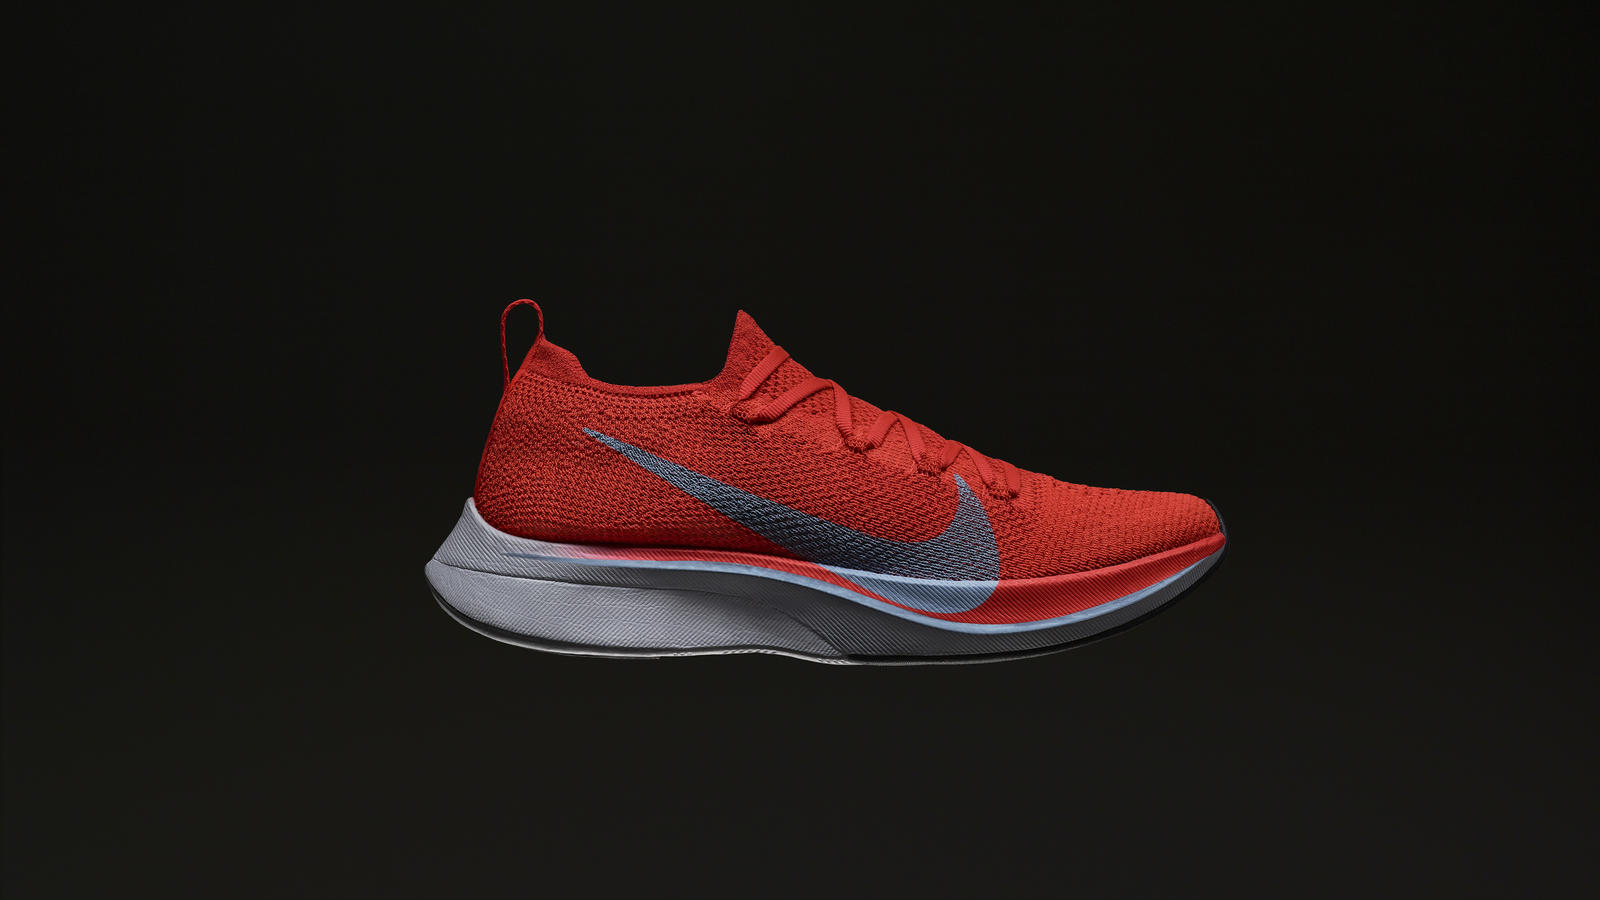 How to Get the Nike Zoom Vaporfly 4% 1